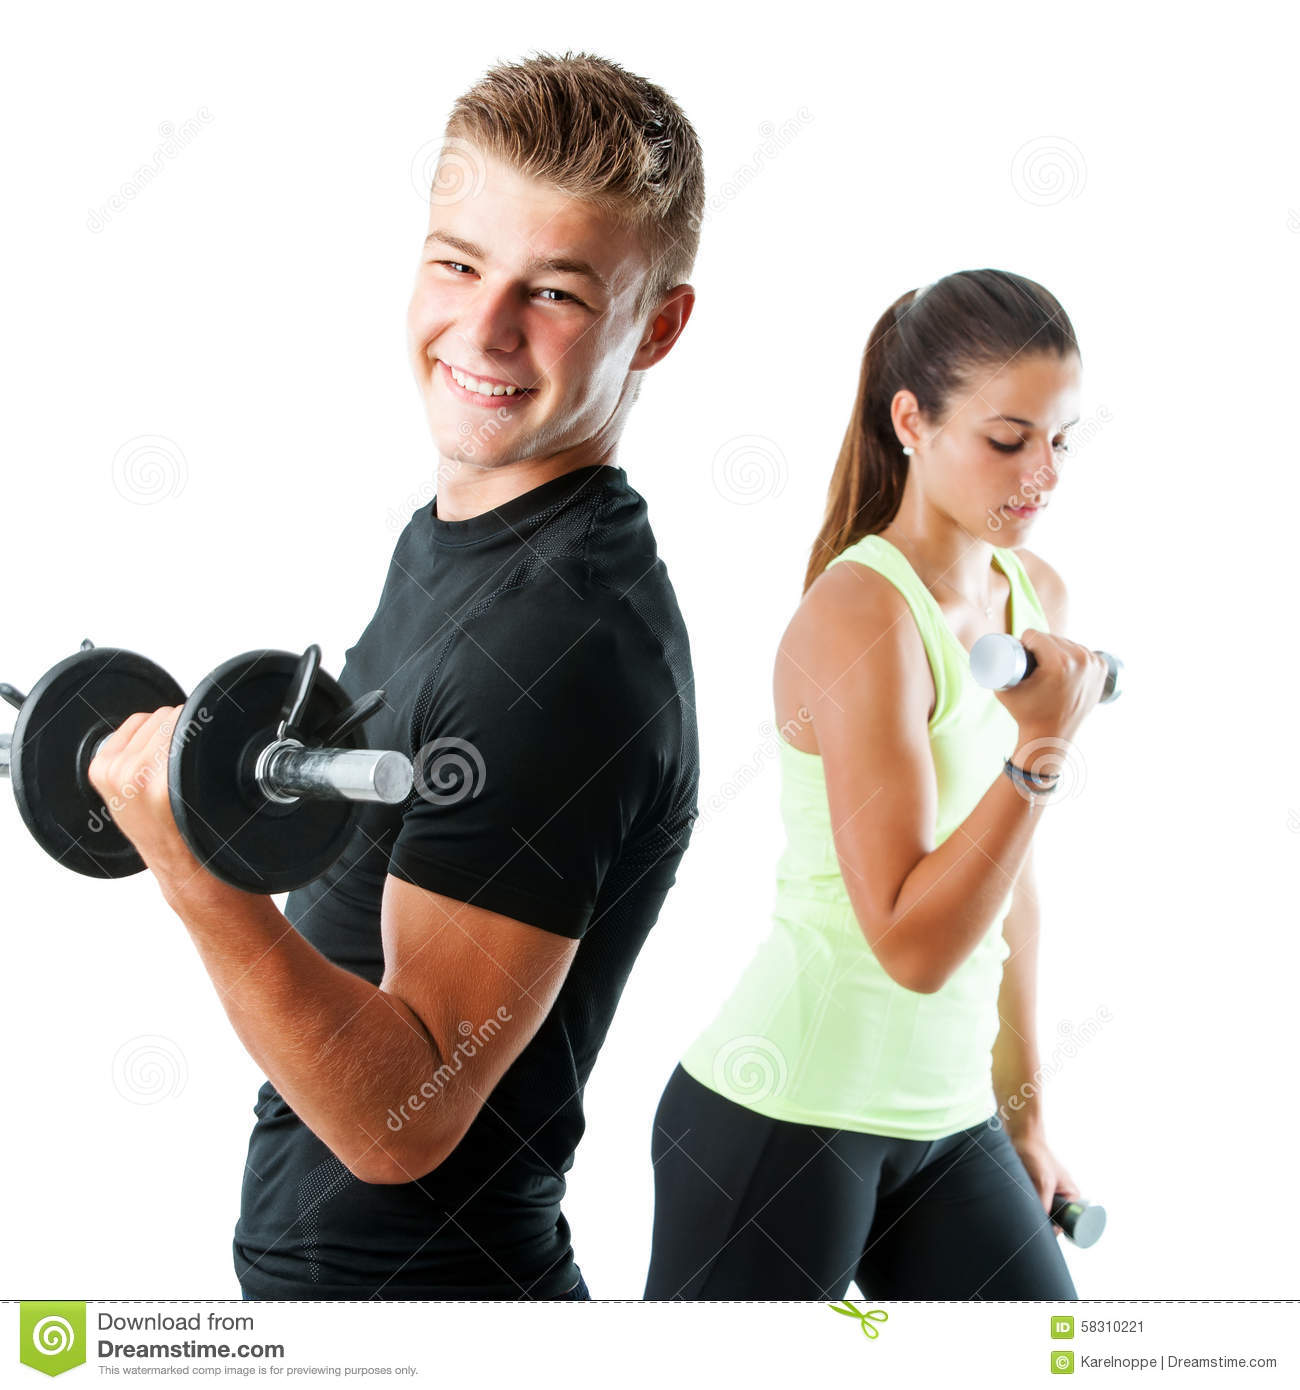 Amino Z Team Womens Weight Lifting Bodybuilding Gym: Handsome Teen Couple Working Out With Weights. Stock Photo